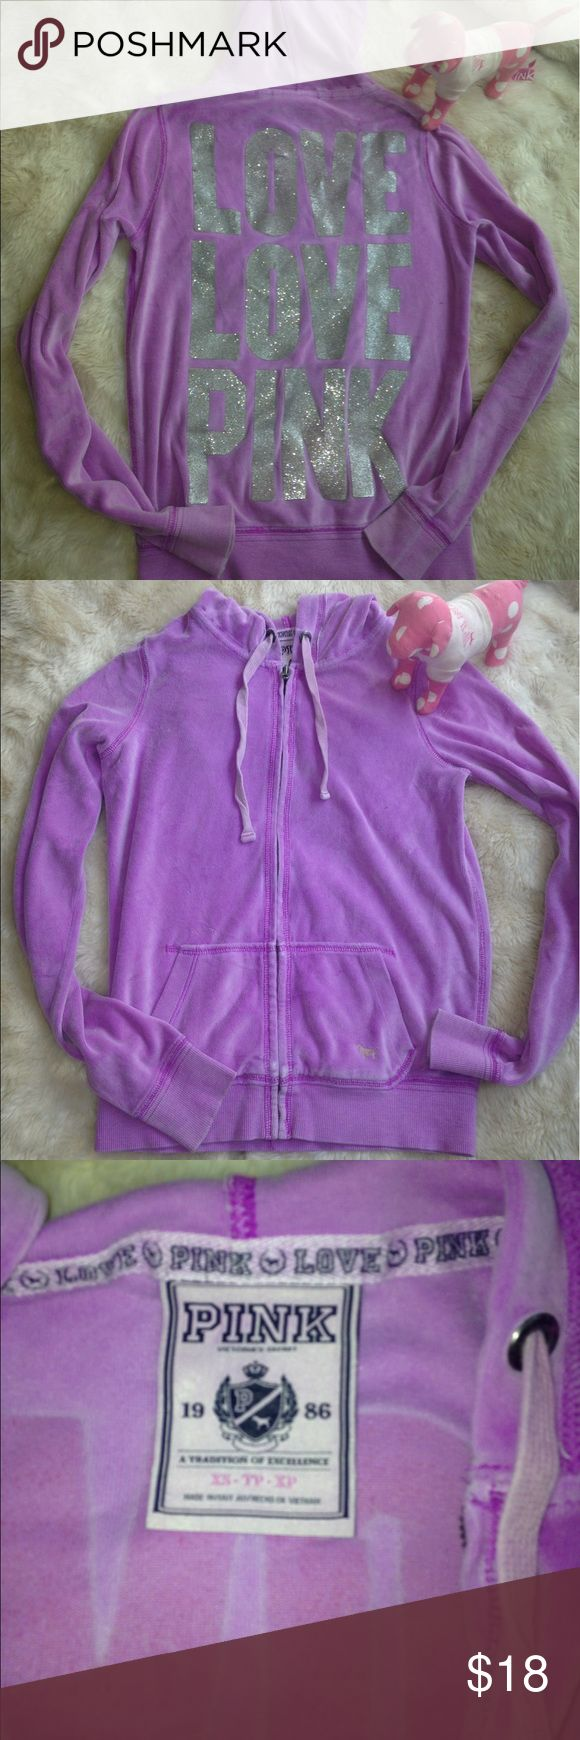 Victoria secret pink purple zip up hoodie xs bling Size xs. Very cute. Has small hole in sleeve not noticeable when on. Cute bling zip up hoodie. PINK Victoria's Secret Jackets & Coats